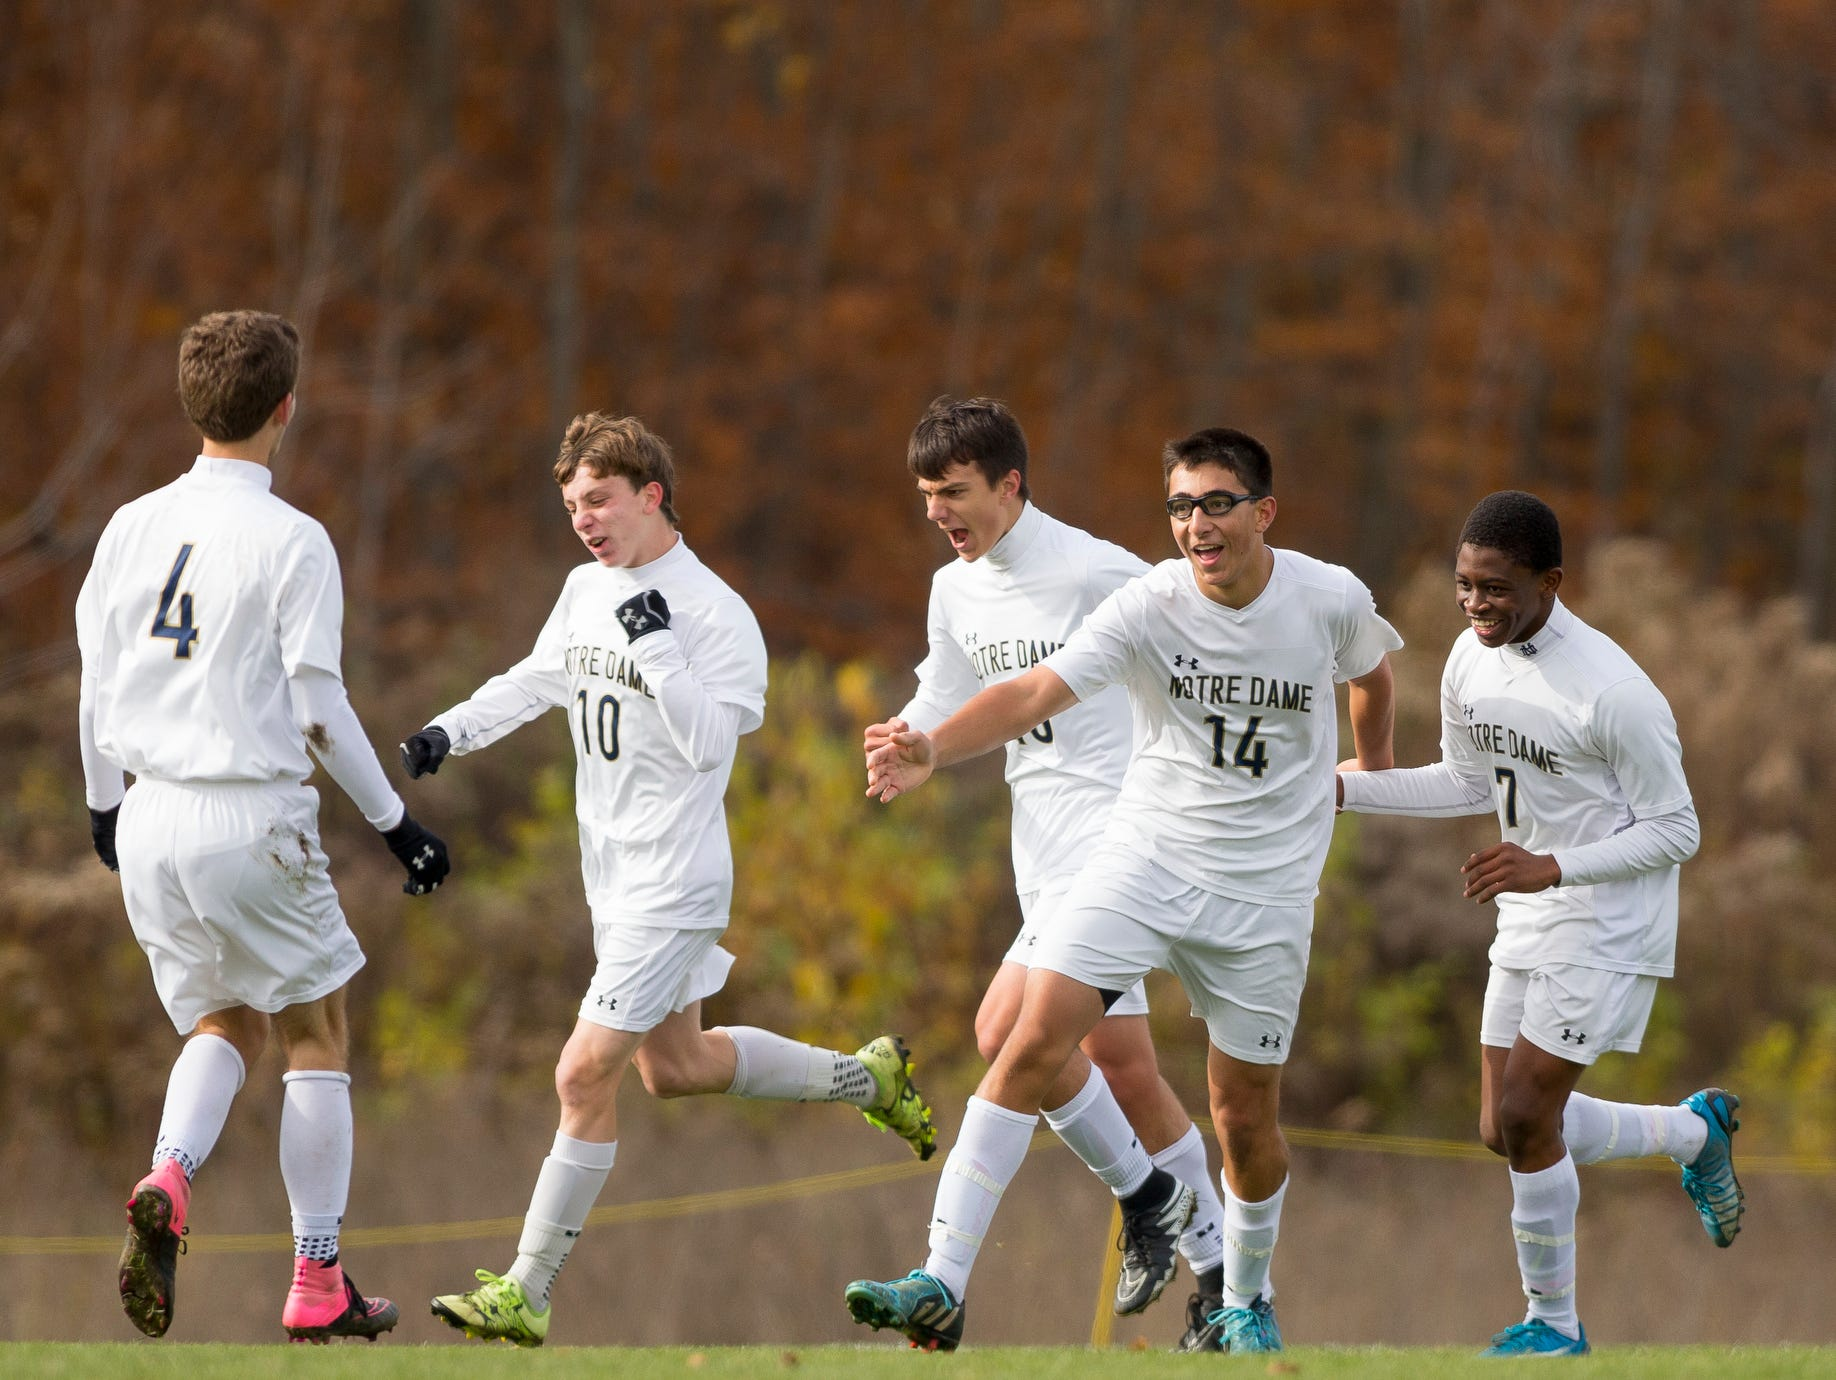 Notre Dame players celebrate their first goal on their way to winning the Section IV Class C soccer championship Saturday in Oneonta. From left, Nick Steed, Michael Woglom, Connor Bayne, Aidan Sharma, and Rocco Coulibaly.